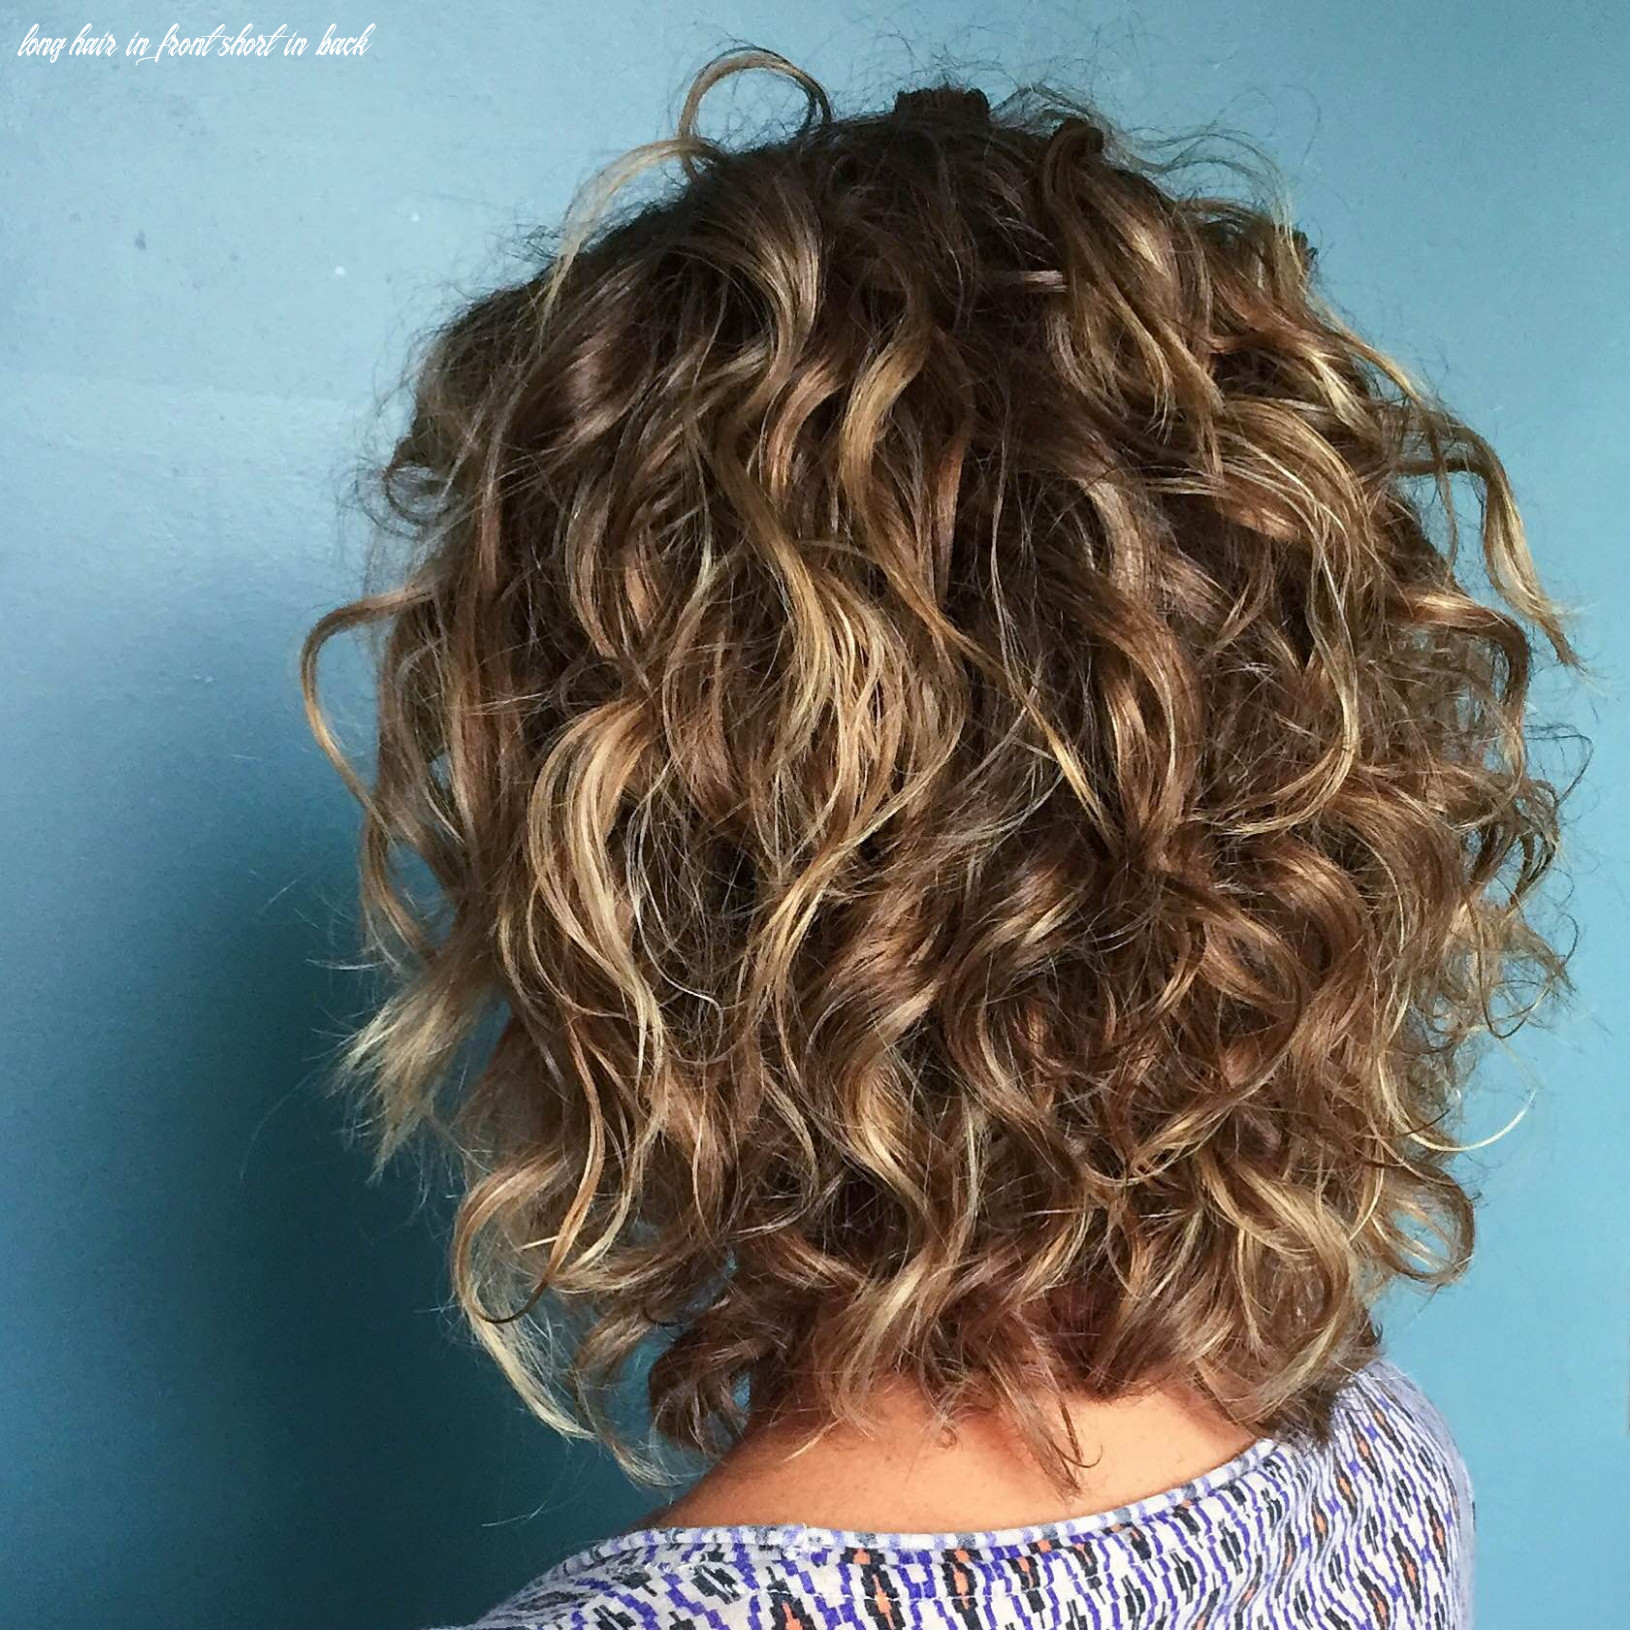 Curly Hairstyles Short In Back Long In Front - Hairstyles Magazine